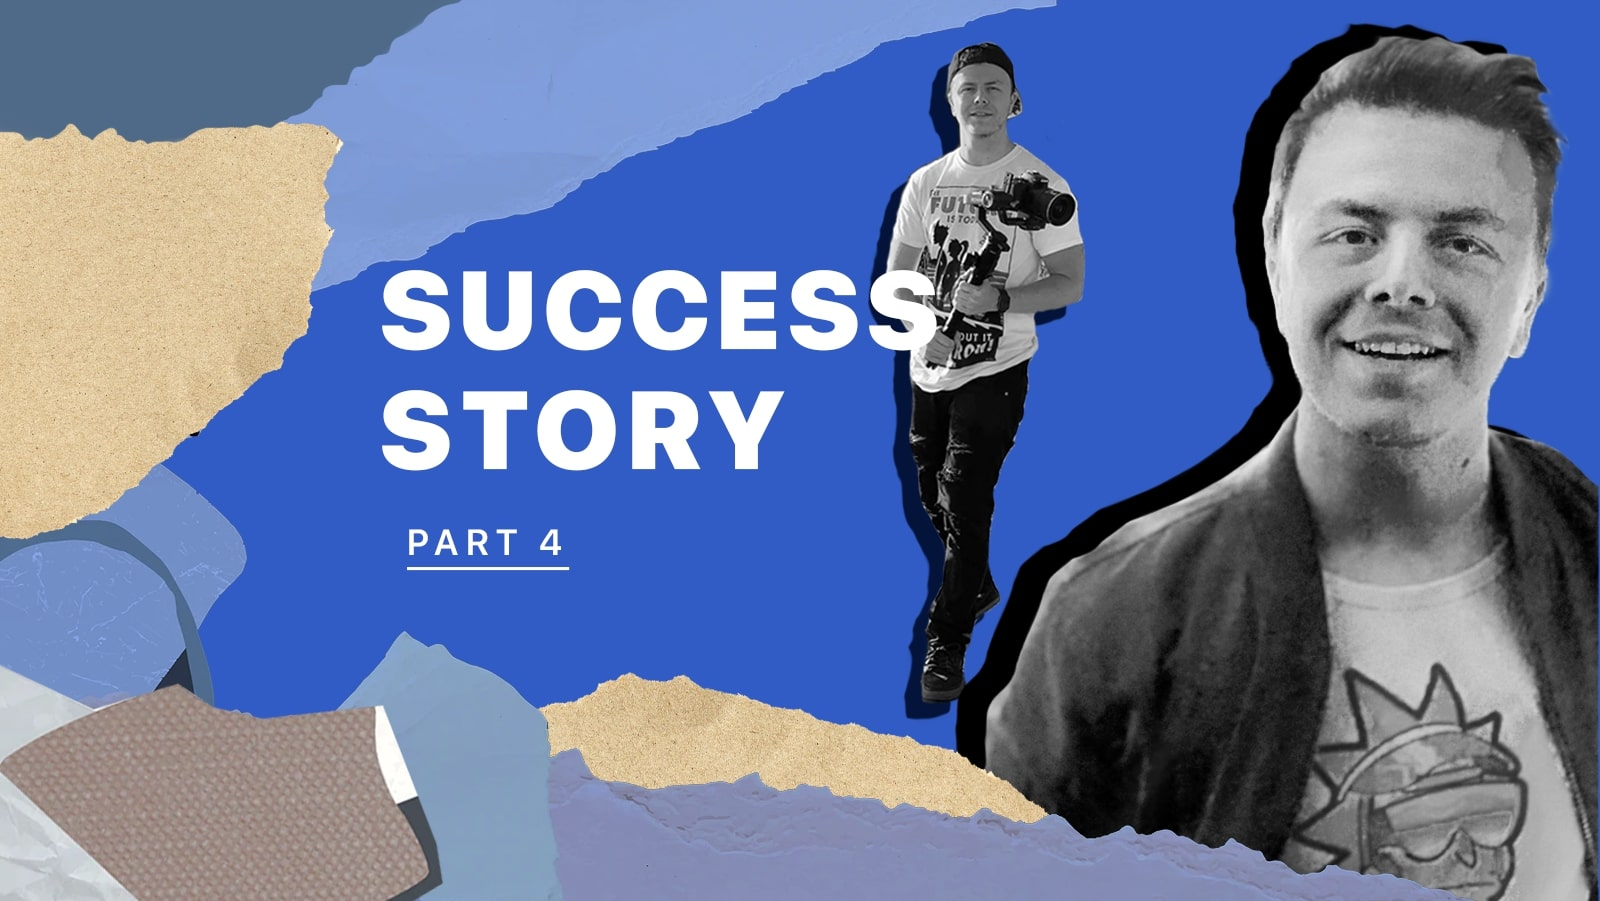 Michael's success story